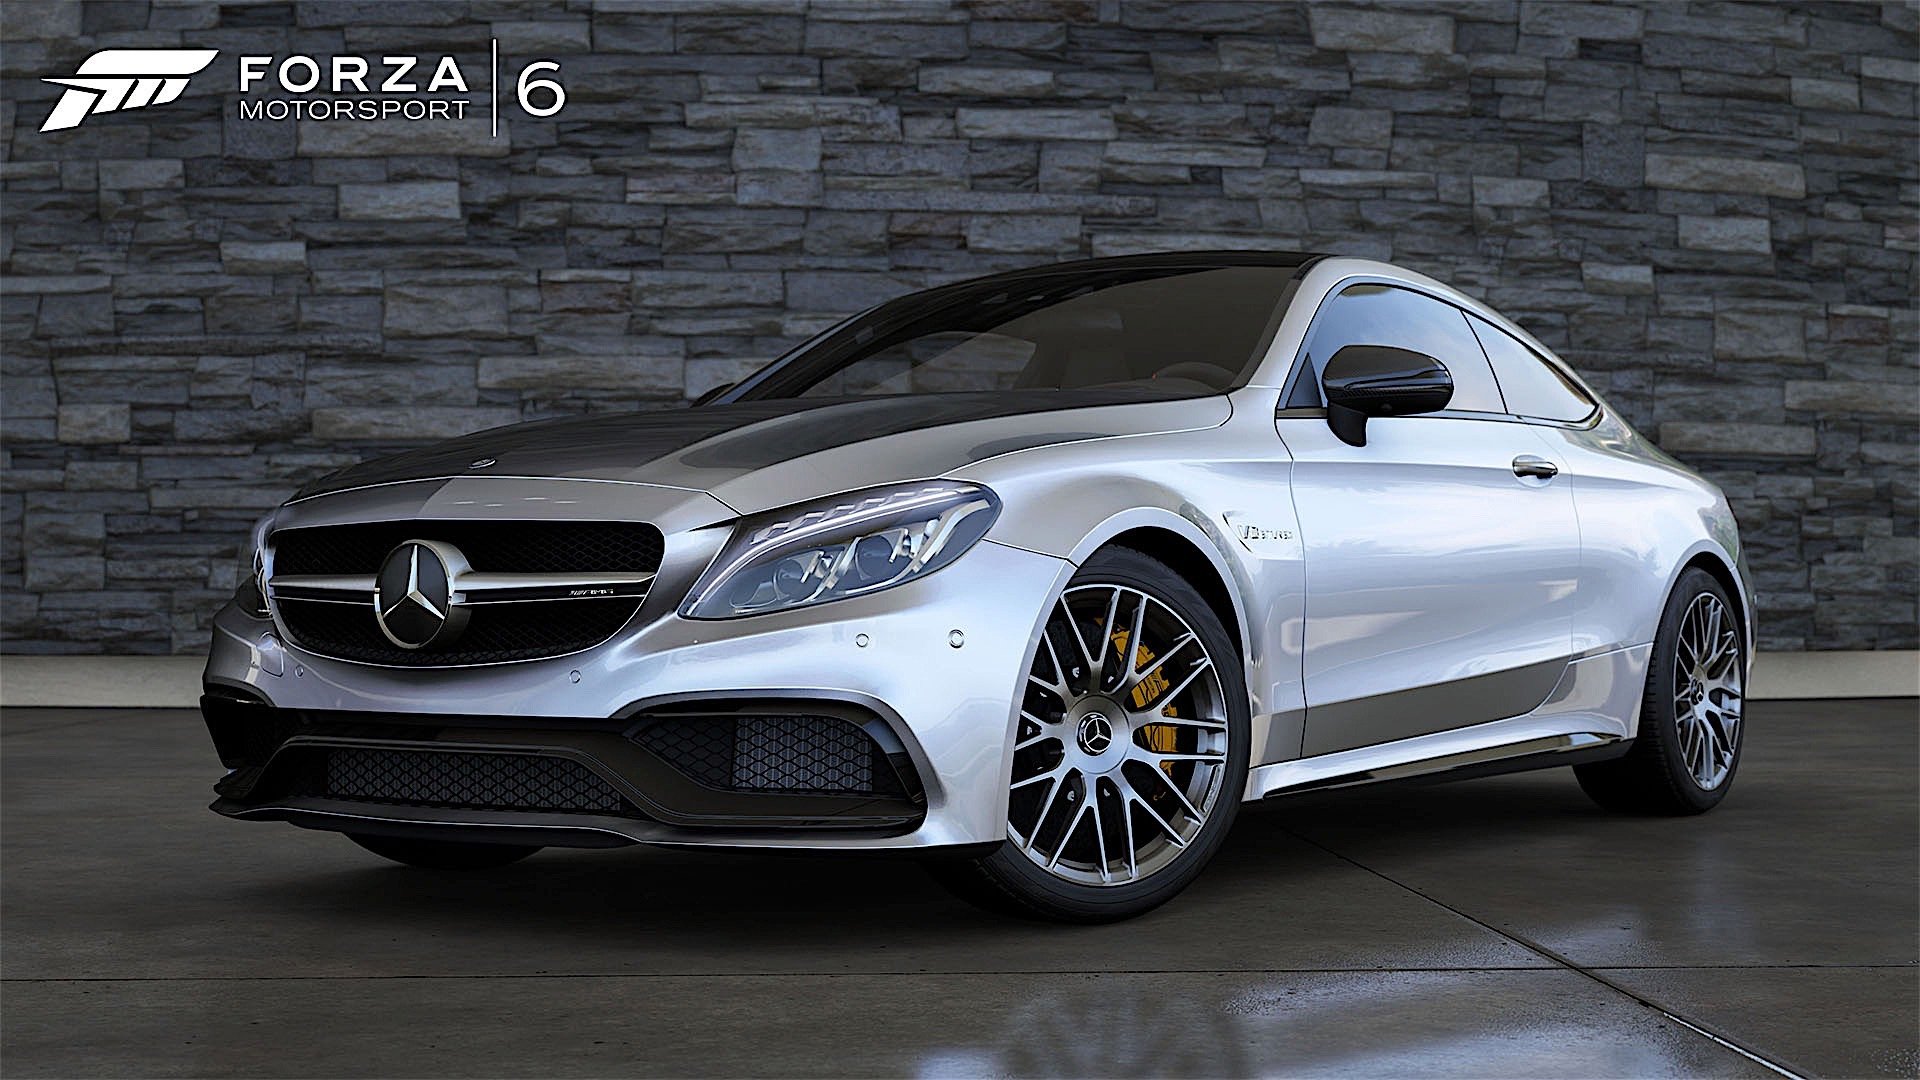 the forza 6 is strong in this mercedes amg c63 s coupe autoevolution. Black Bedroom Furniture Sets. Home Design Ideas